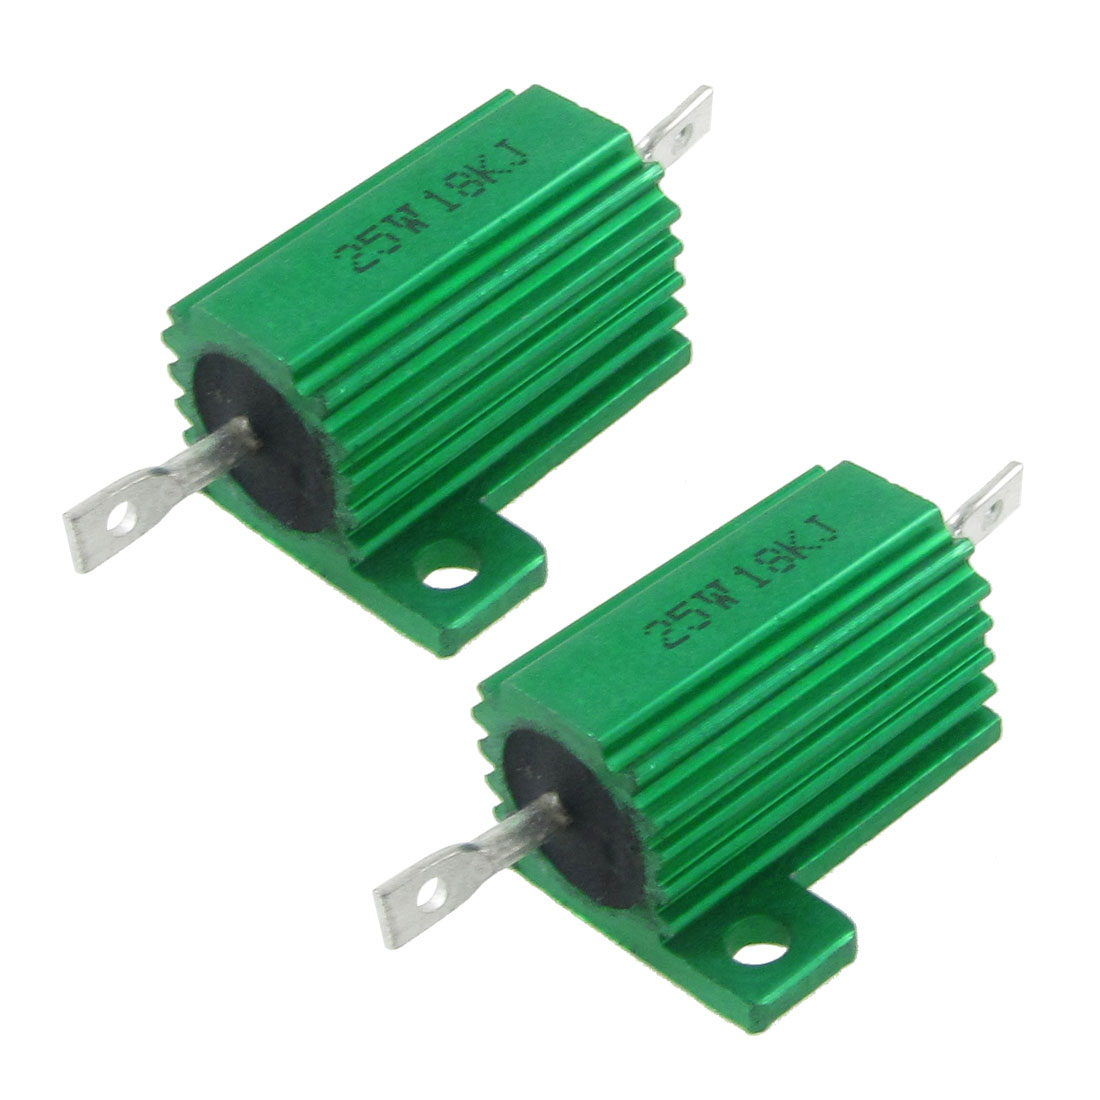 2 Pcs Chassis Mounted Green Aluminum Clad Wirewound Resistors 25W 18K Ohm 5%